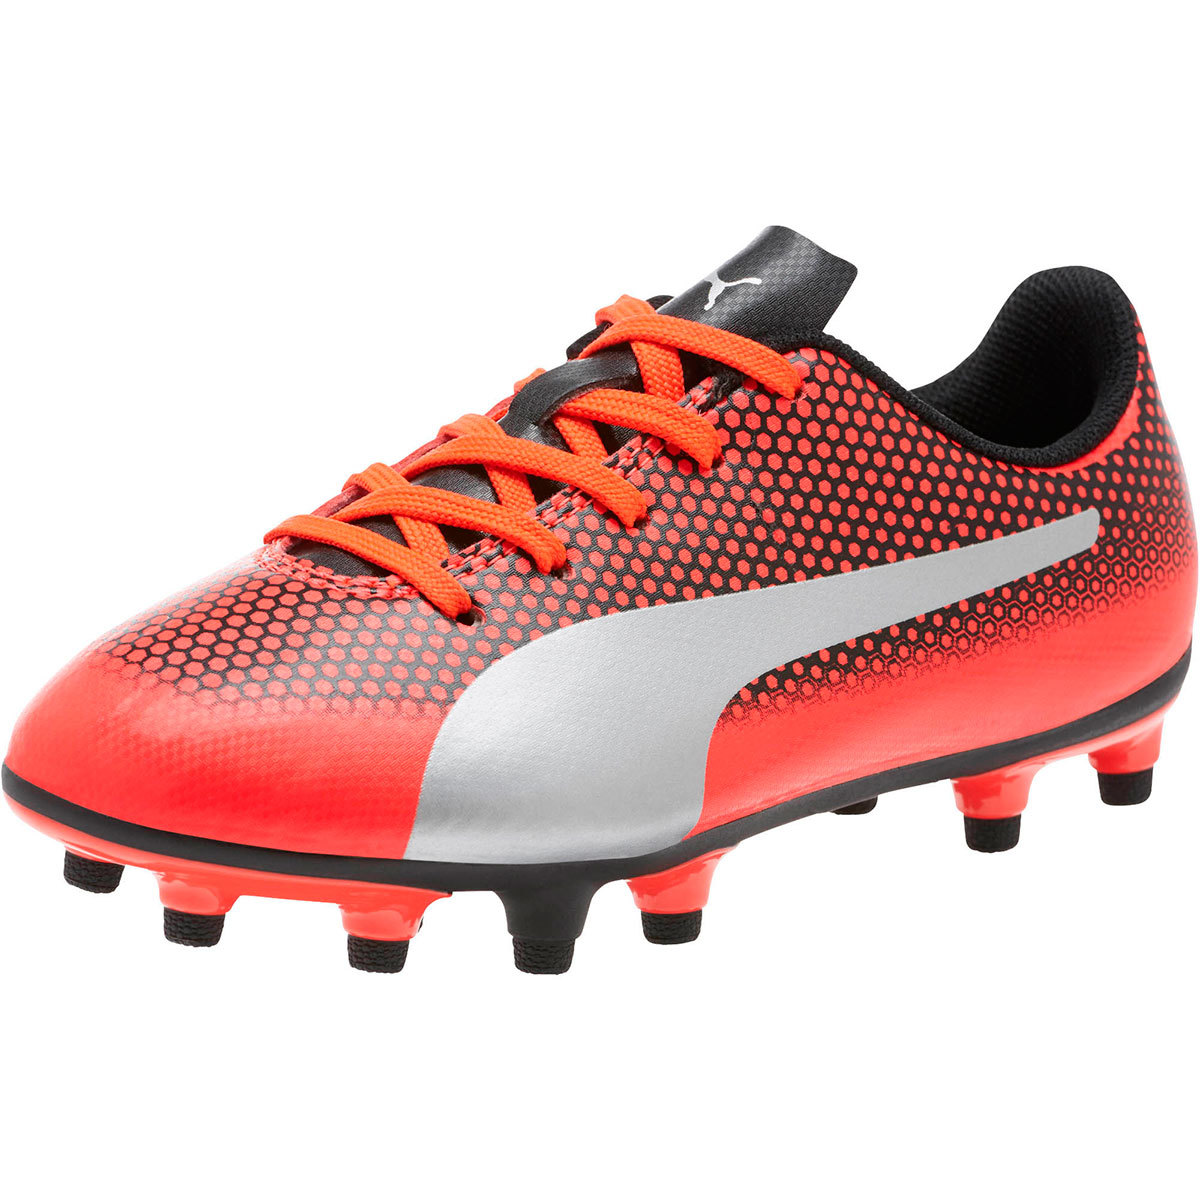 Puma Kids' Spirit Fg Jr Soccer Cleats - Red, 5.5